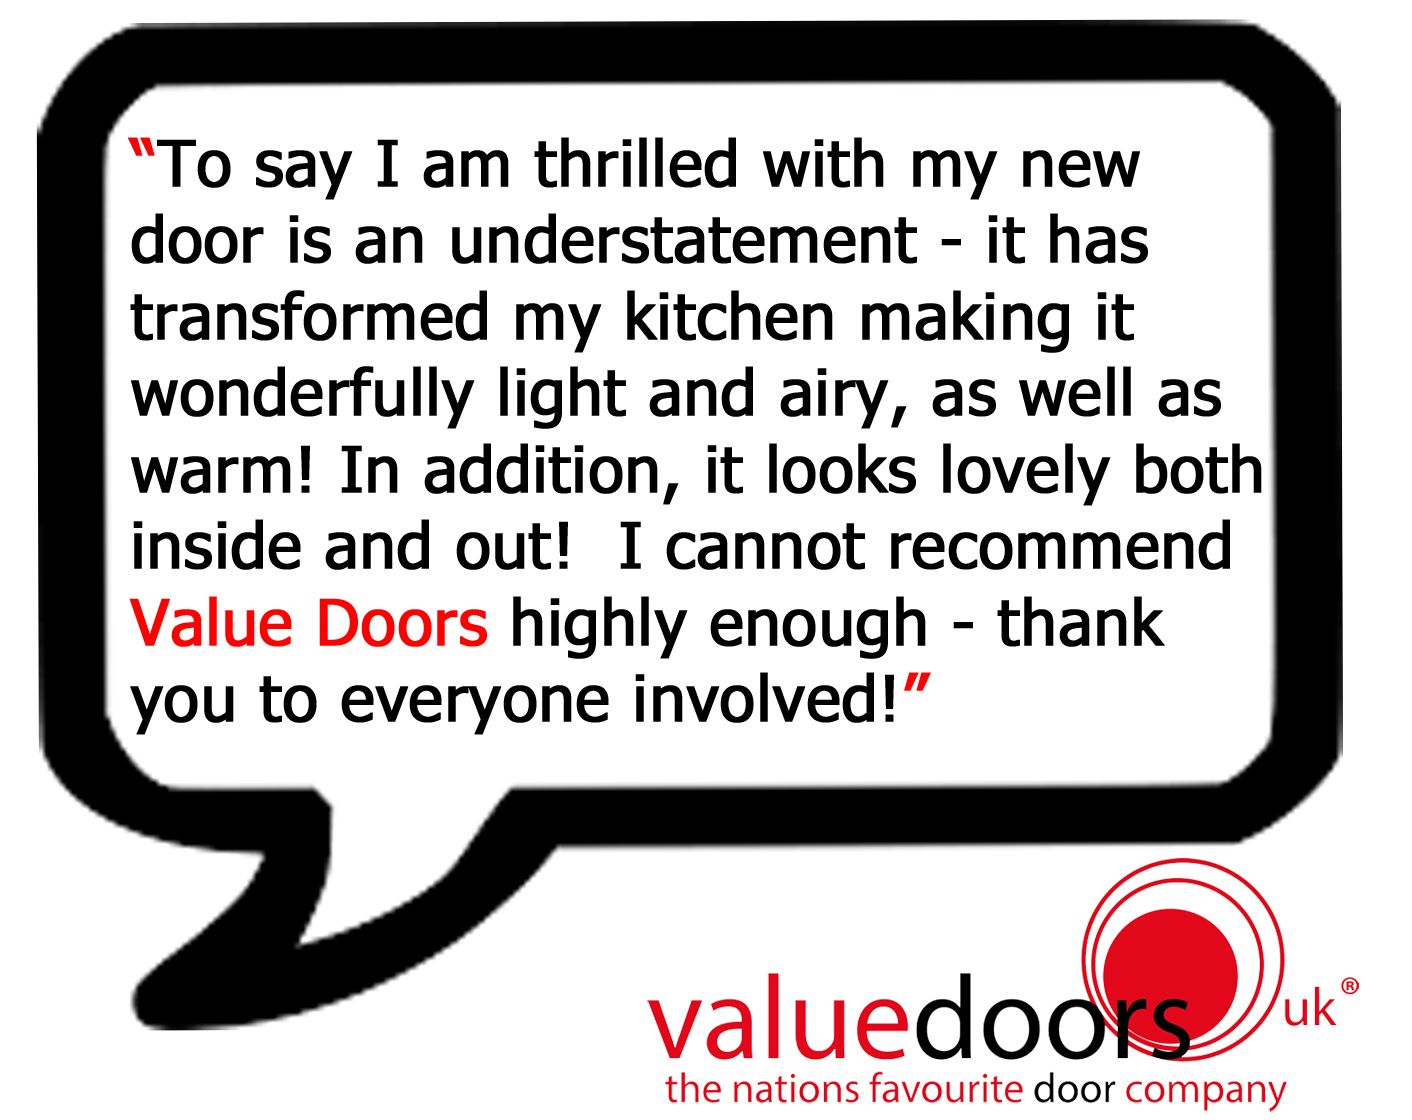 Another amazing review from a lovely customer! http://www.valuedoors.co.uk/reviews